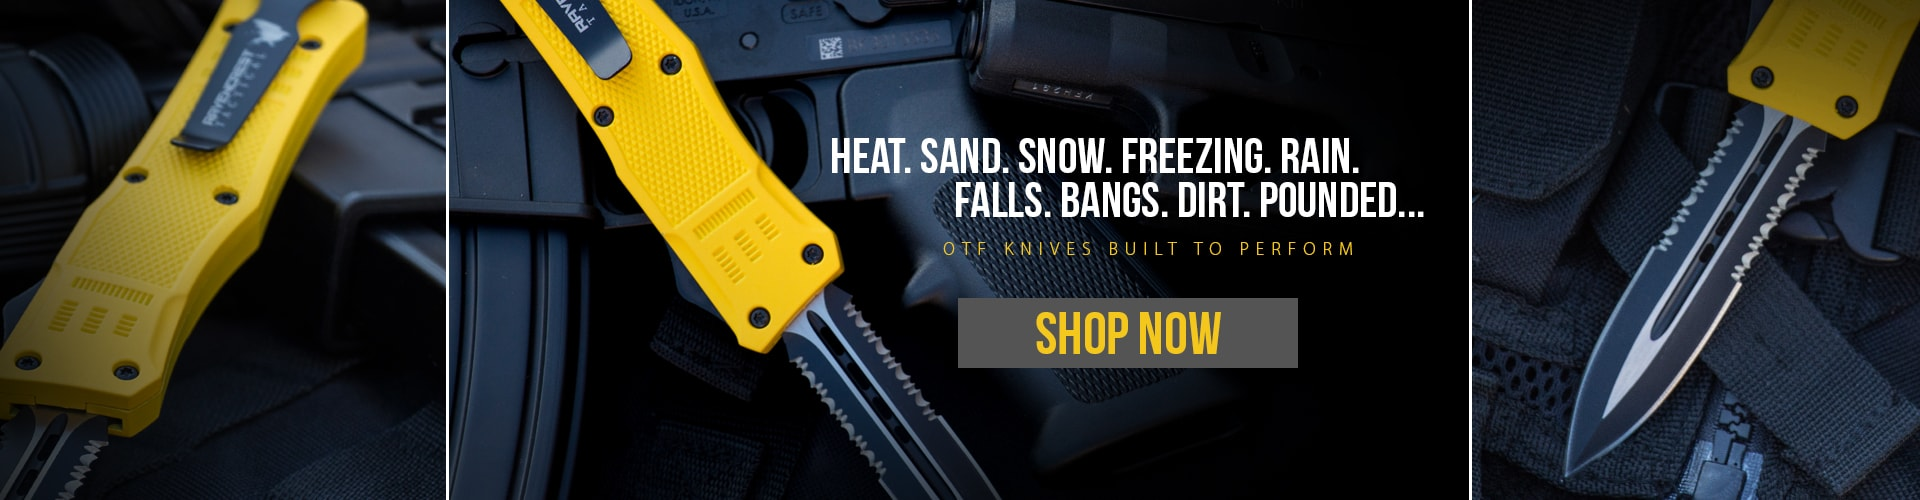 OTF Knives Built To Perform